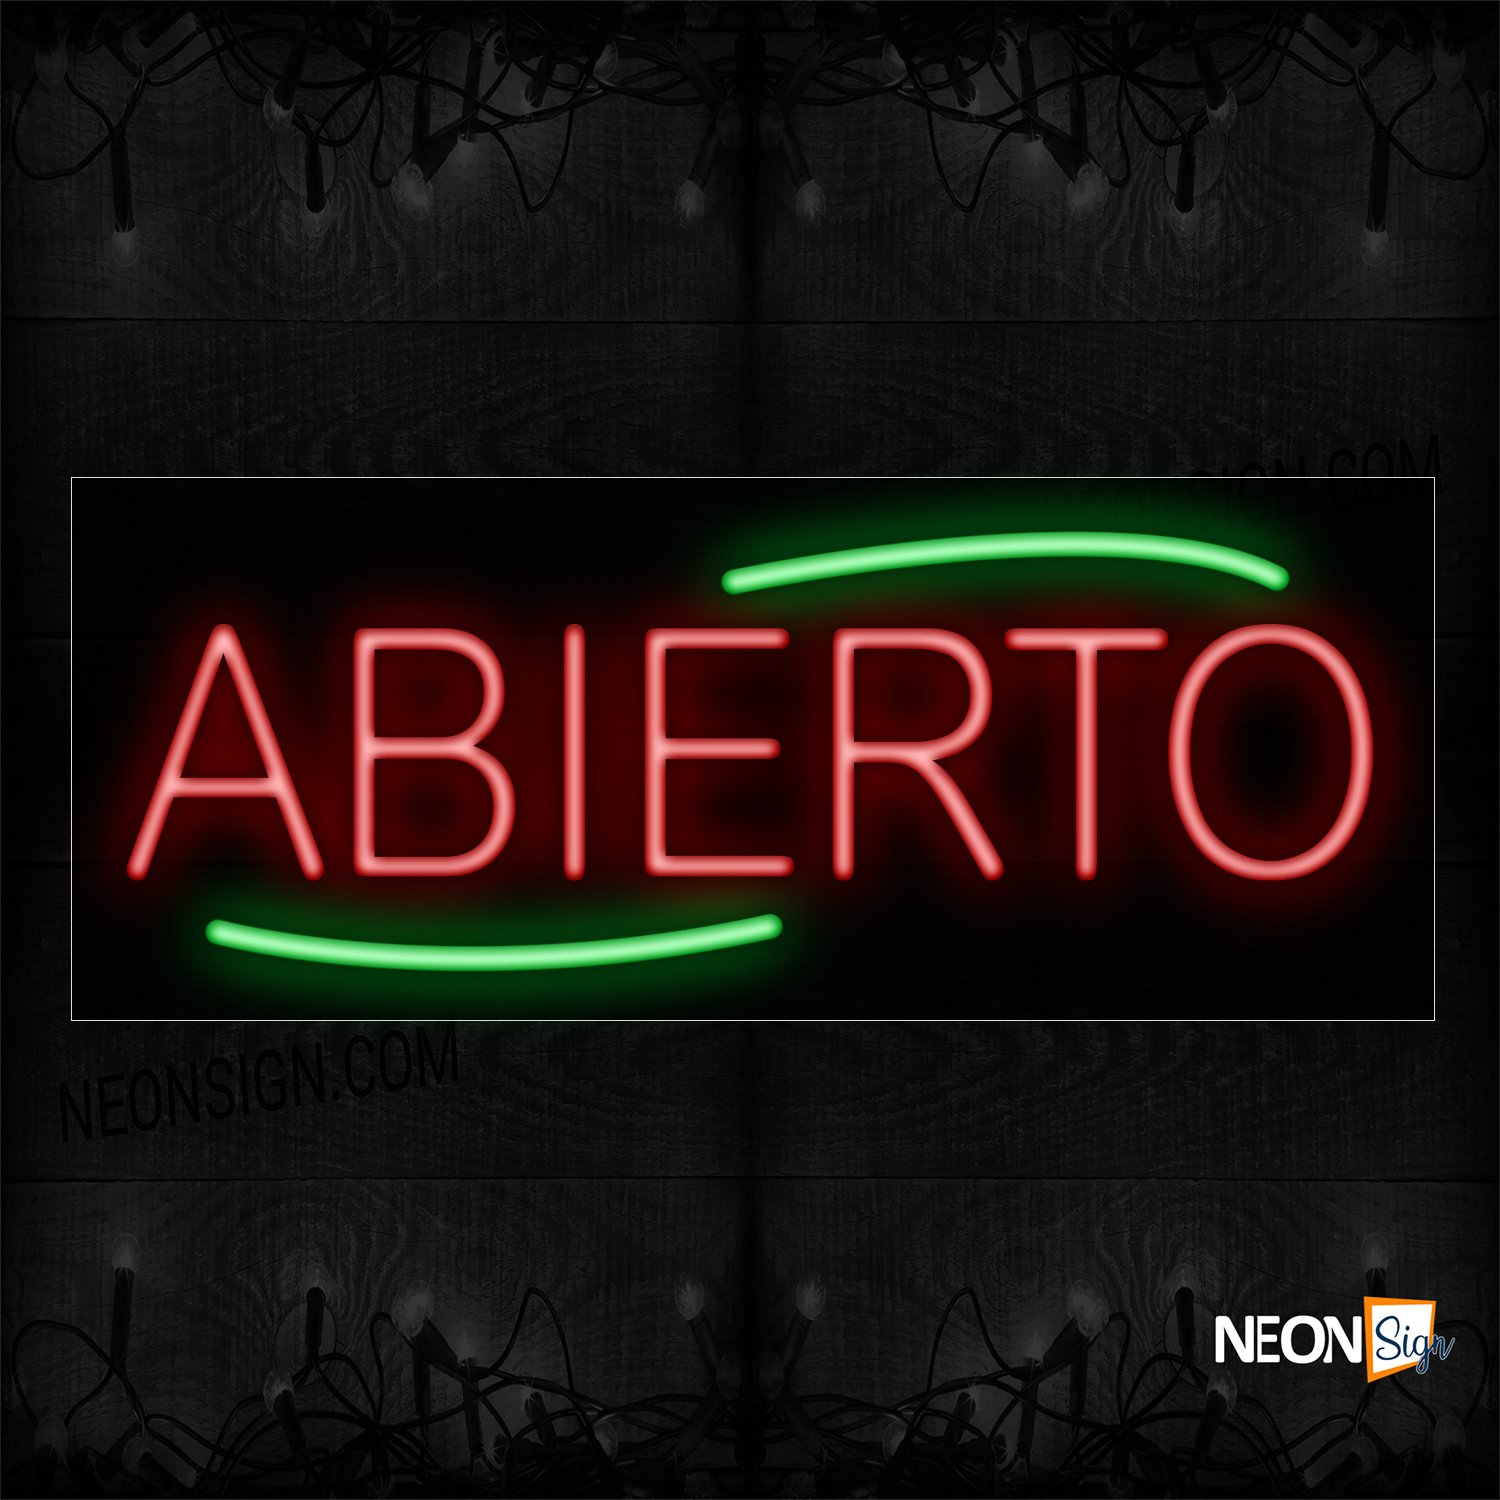 Image of Abierto With Green Arc Border Neon Sign